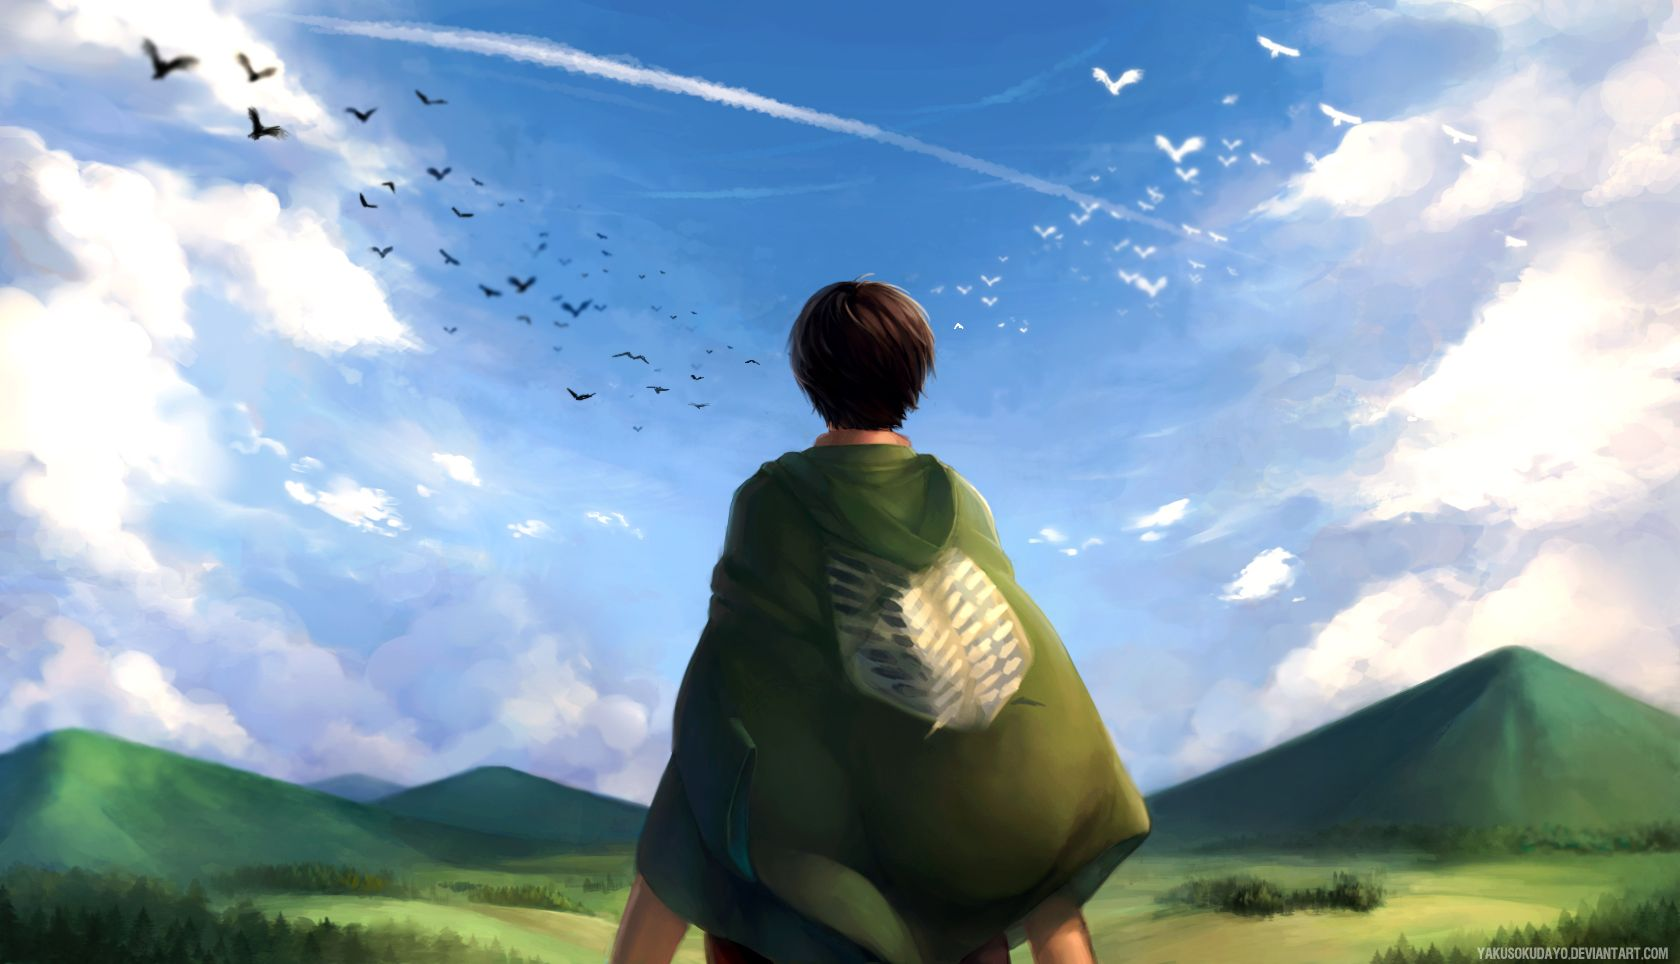 Feel The Freedom Computer Wallpapers Desktop Backgrounds 1680x964 Id 612508 Attack On Titan Anime Attack On Titan Anime Quotes